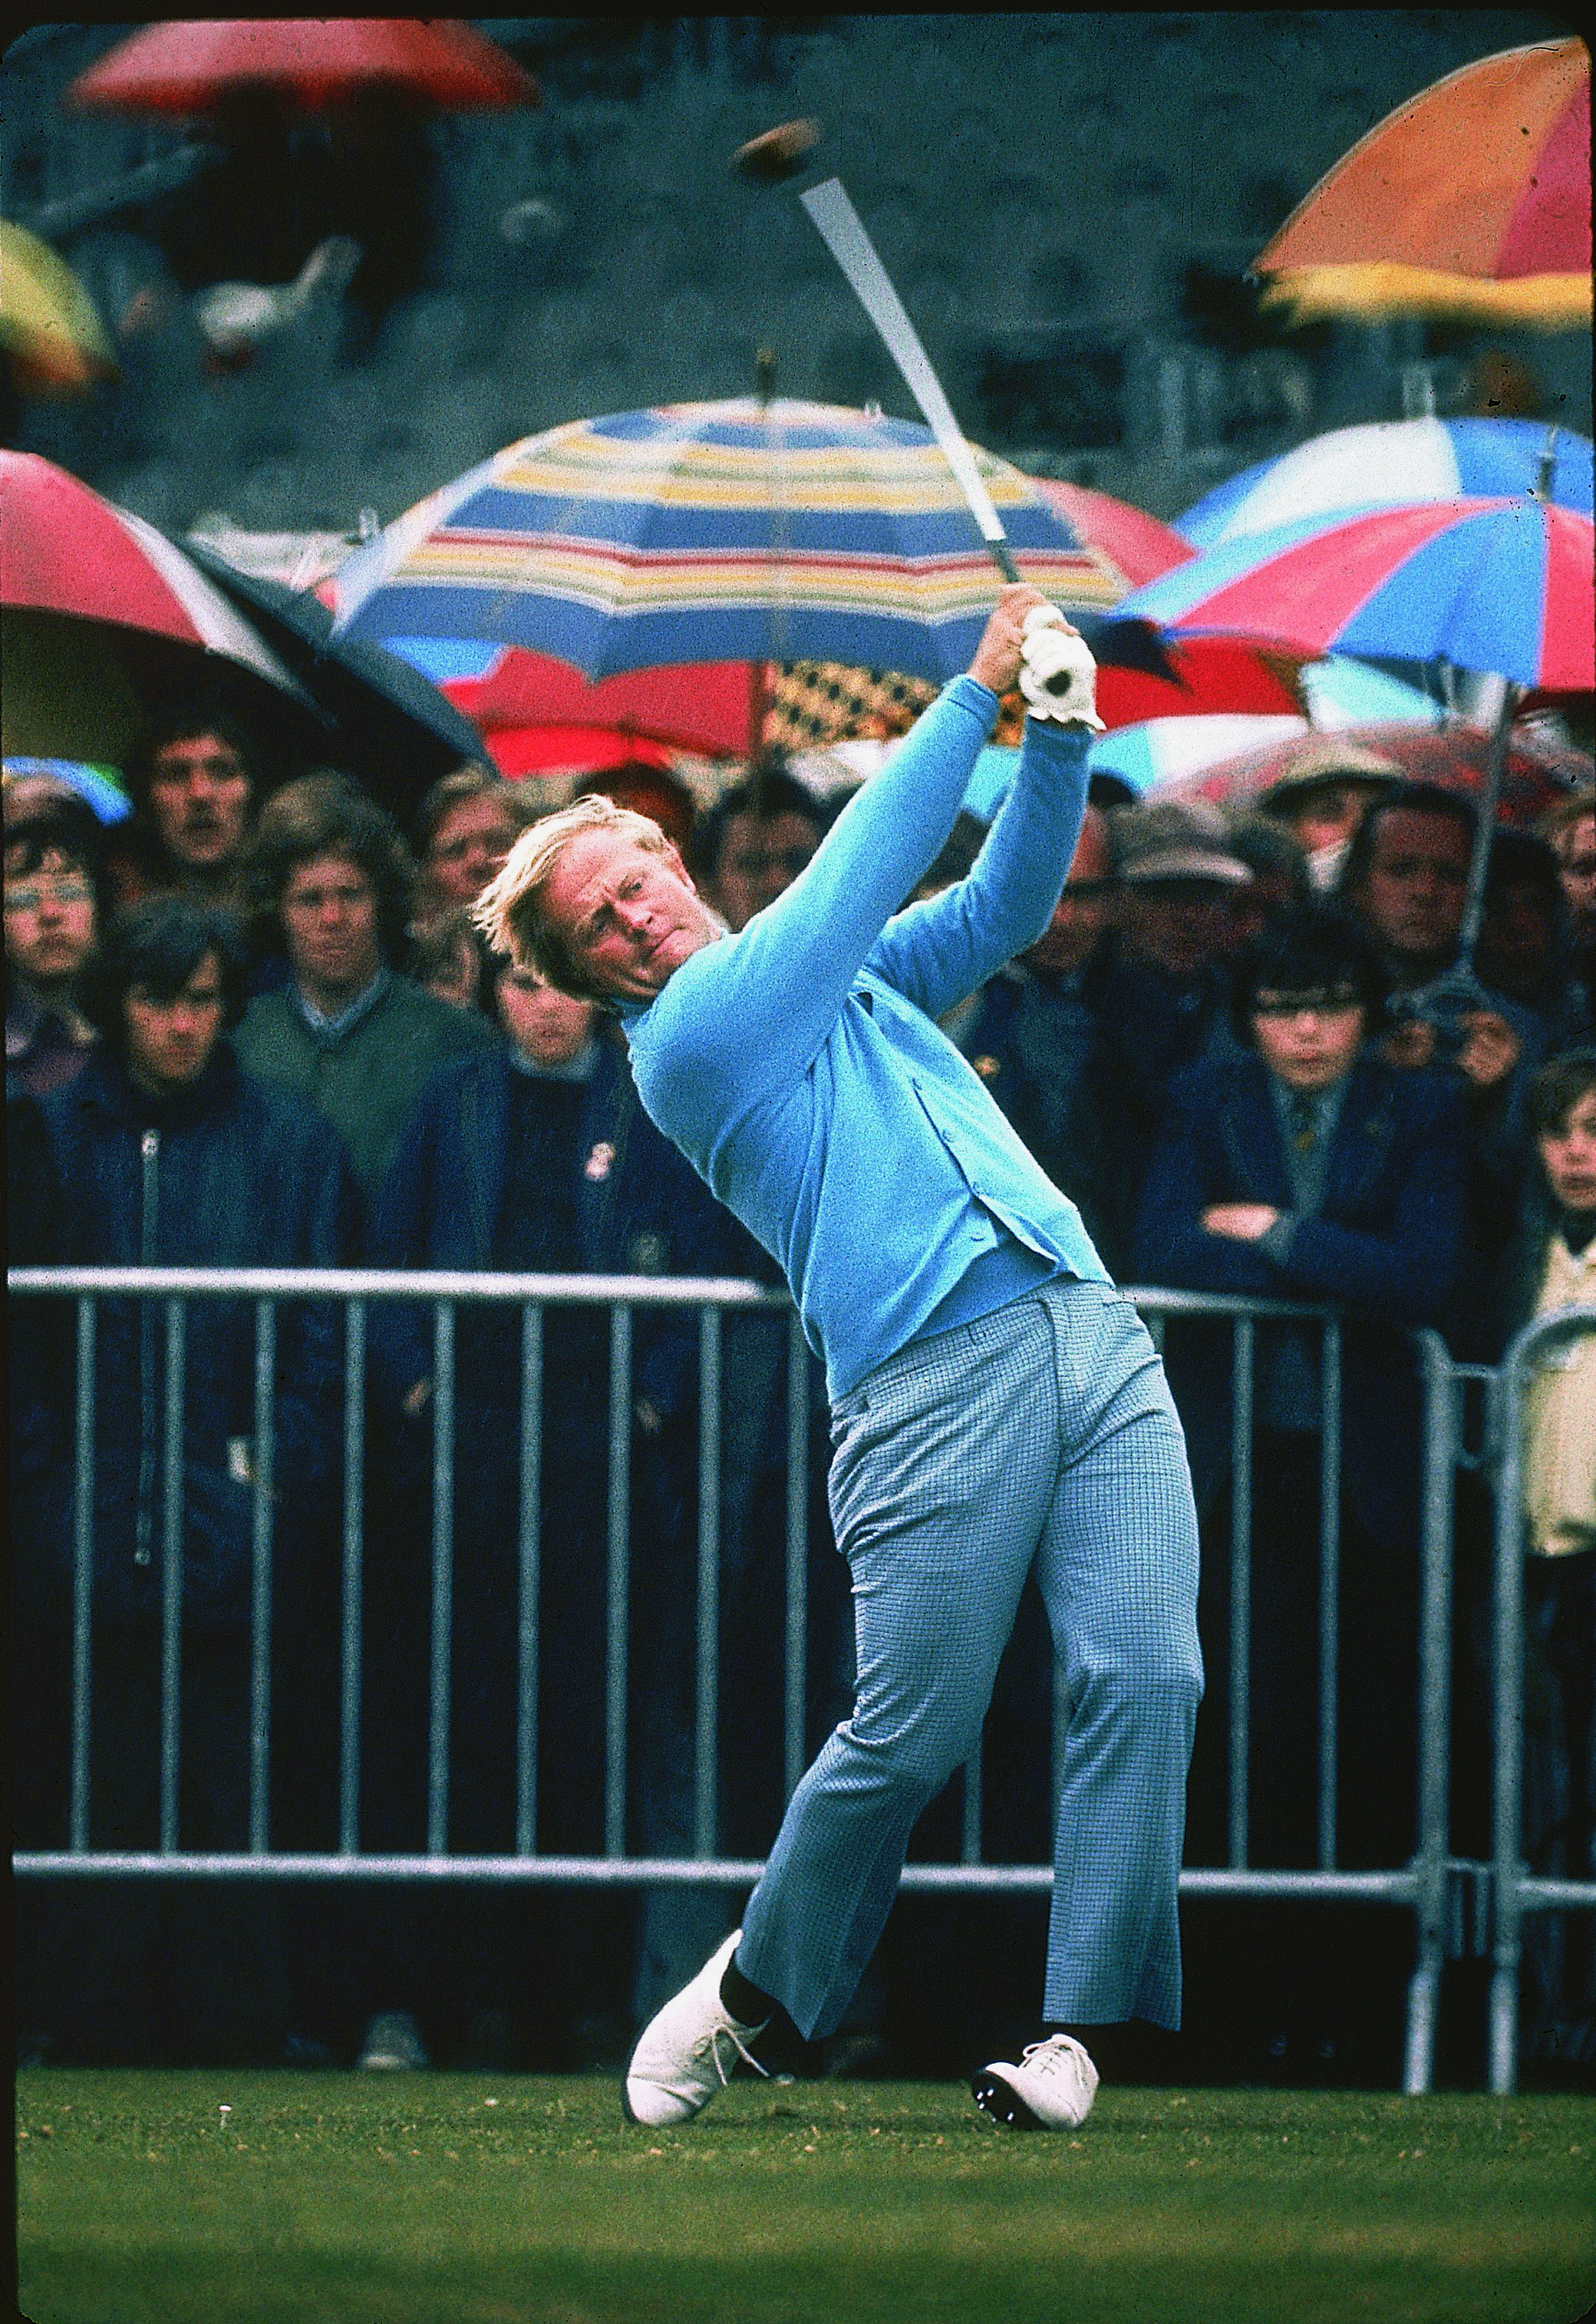 Jack Nicklaus plays the 1972 British Open at Muirfield.